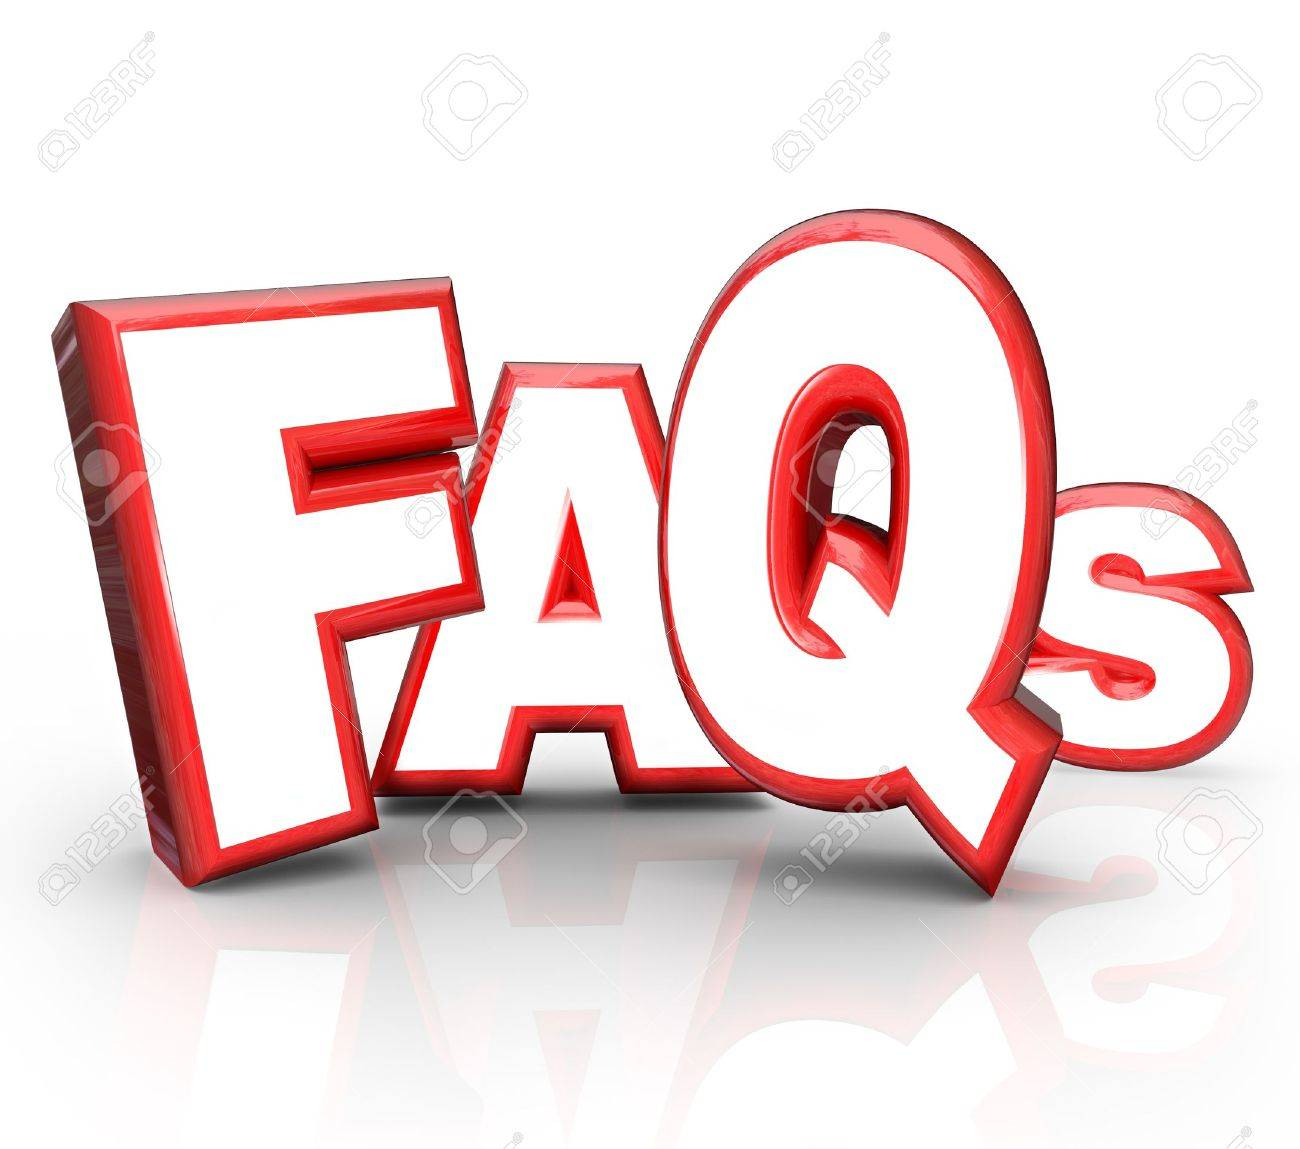 The letters FAQs standing for Frequently Asked Questions in 3D lettering representing question and answer period or forum to get you the solution and help you need for a problem or confusion Stock Photo - 13031170